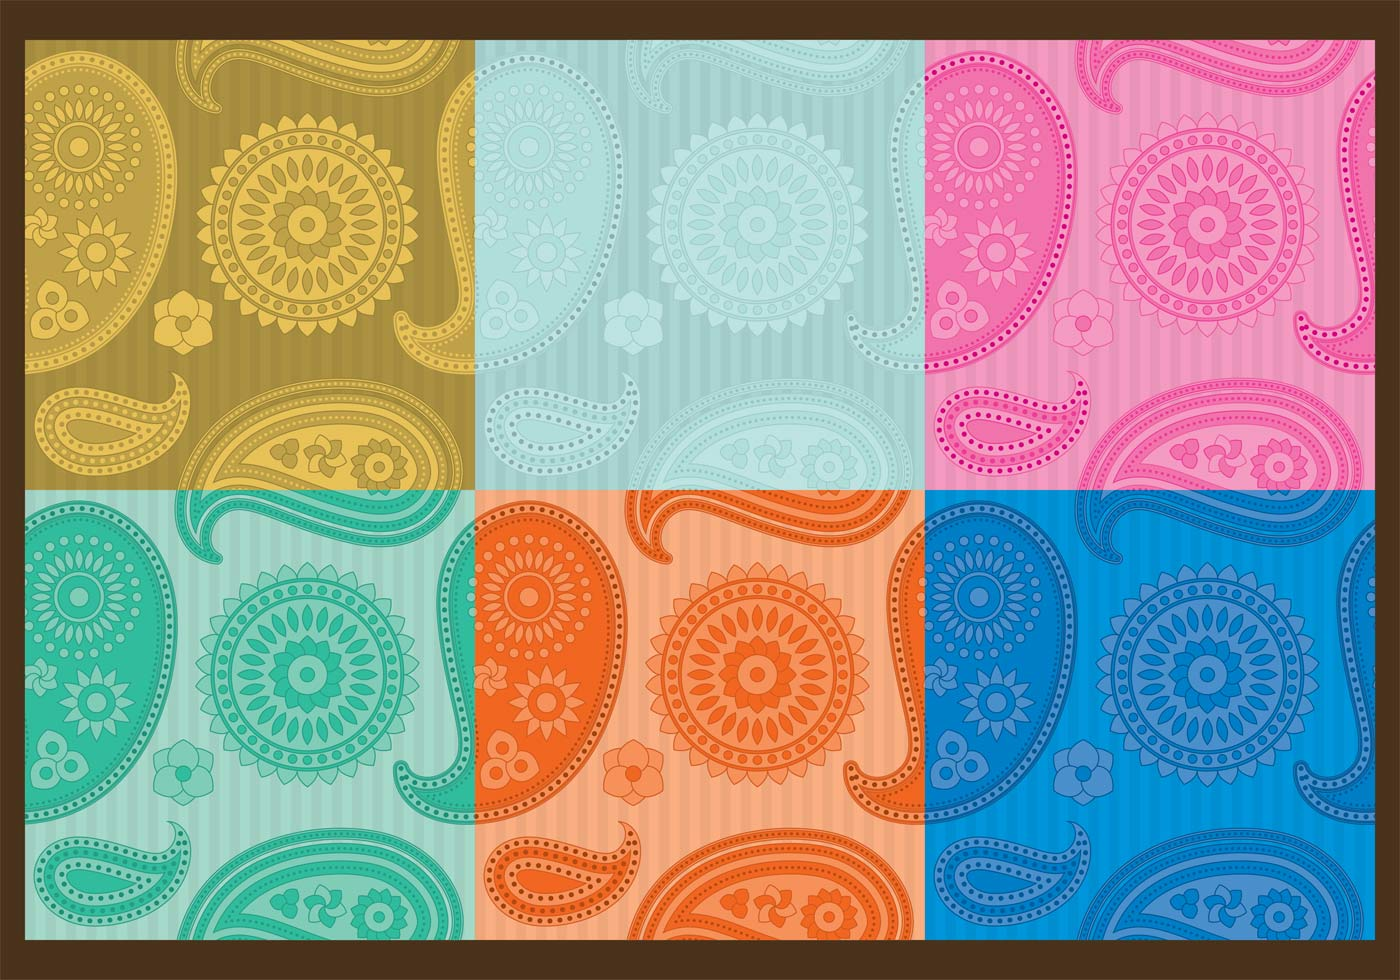 Appealing paisley pattern vector images